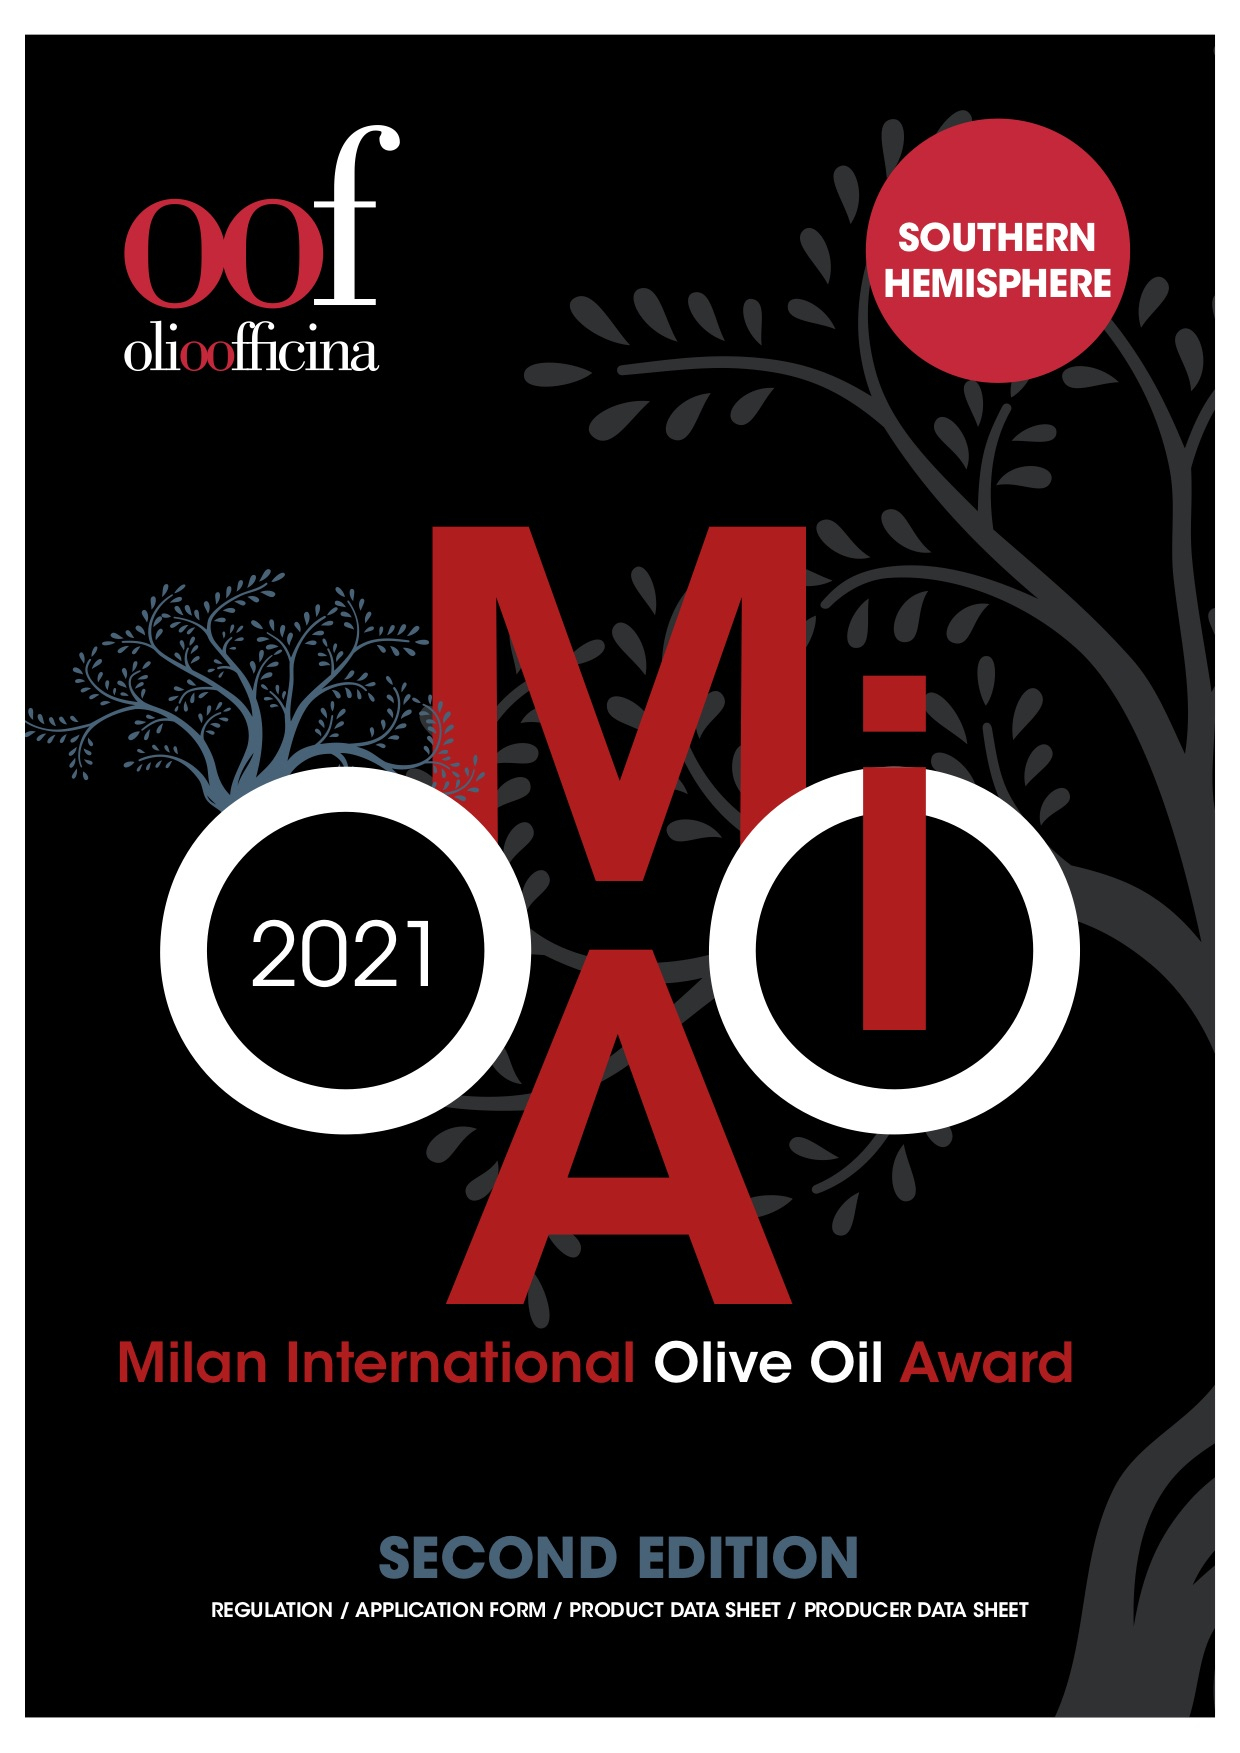 Registration to participate in the MIOOA 2021 extra virgin quality competition for the southern hemisphere is now open